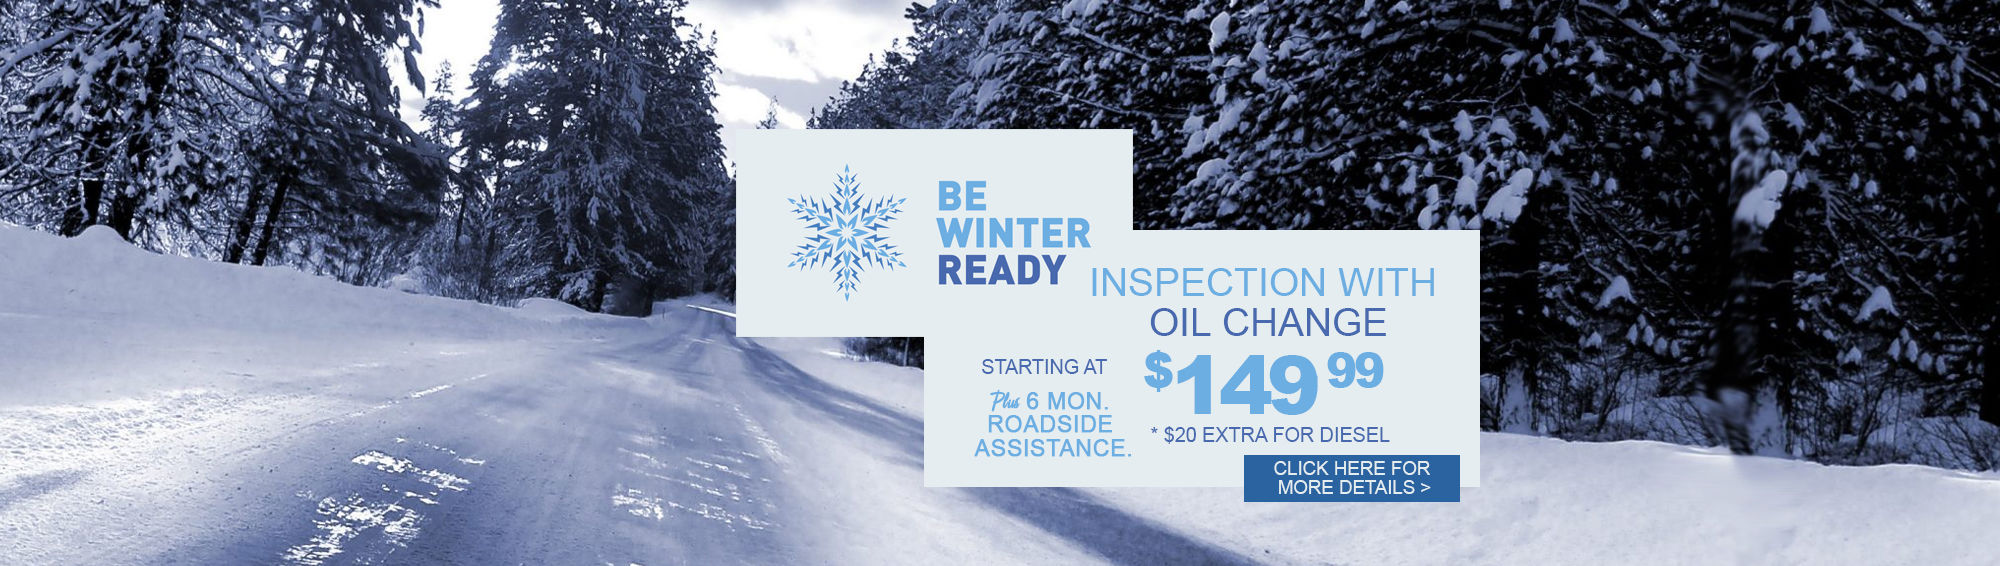 Winter Inspection with Oil Change Nov/Dec 2017 (Web)